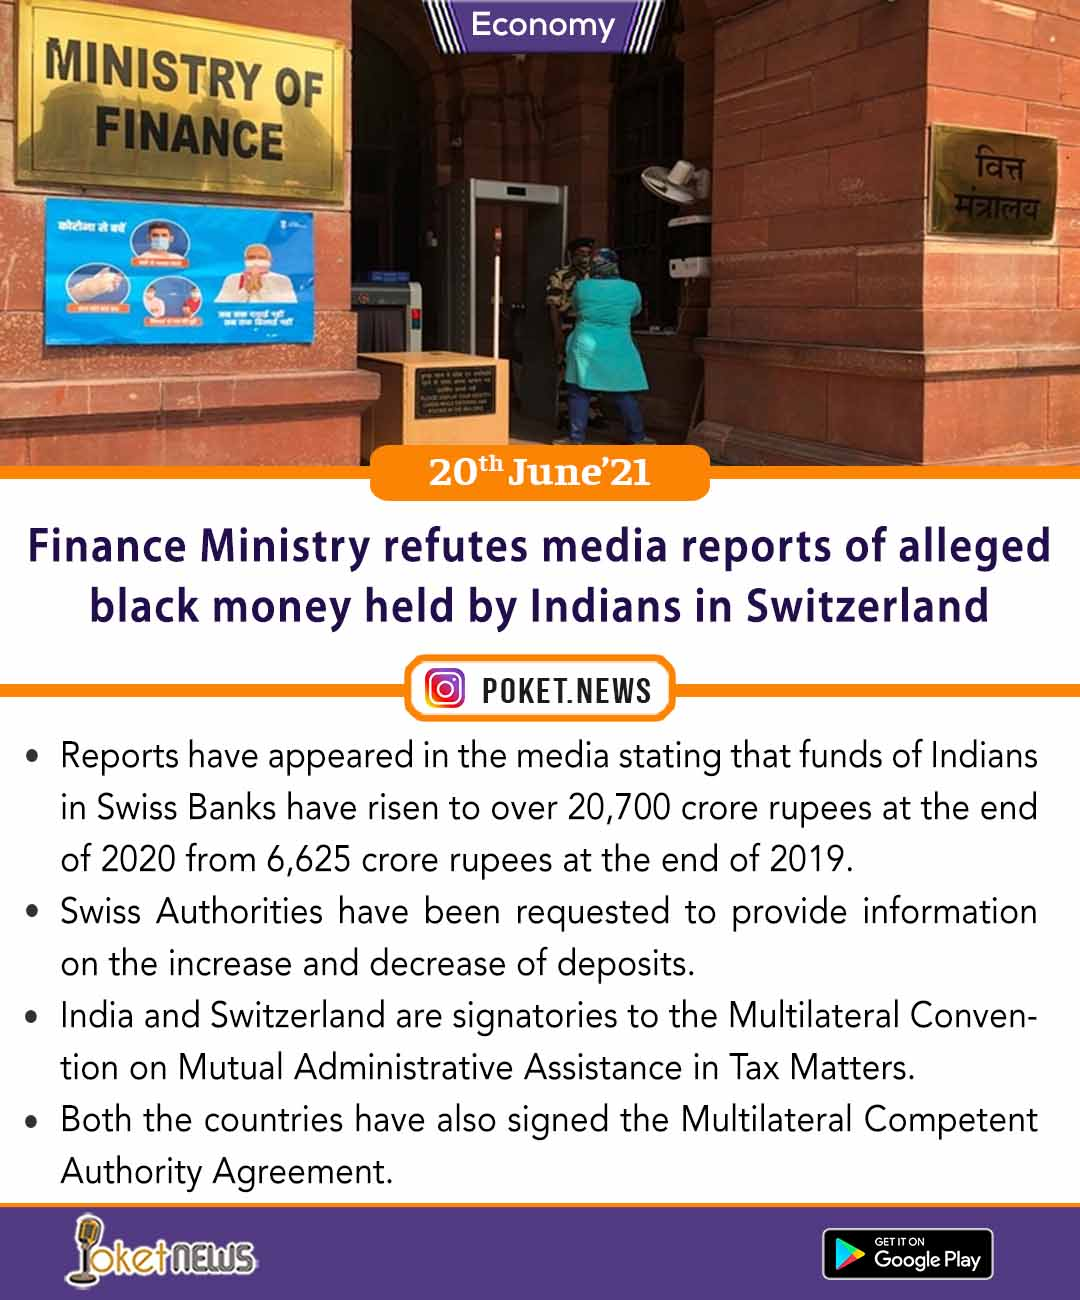 Finance Ministry refutes media reports of alleged black money held by Indians in Switzerland